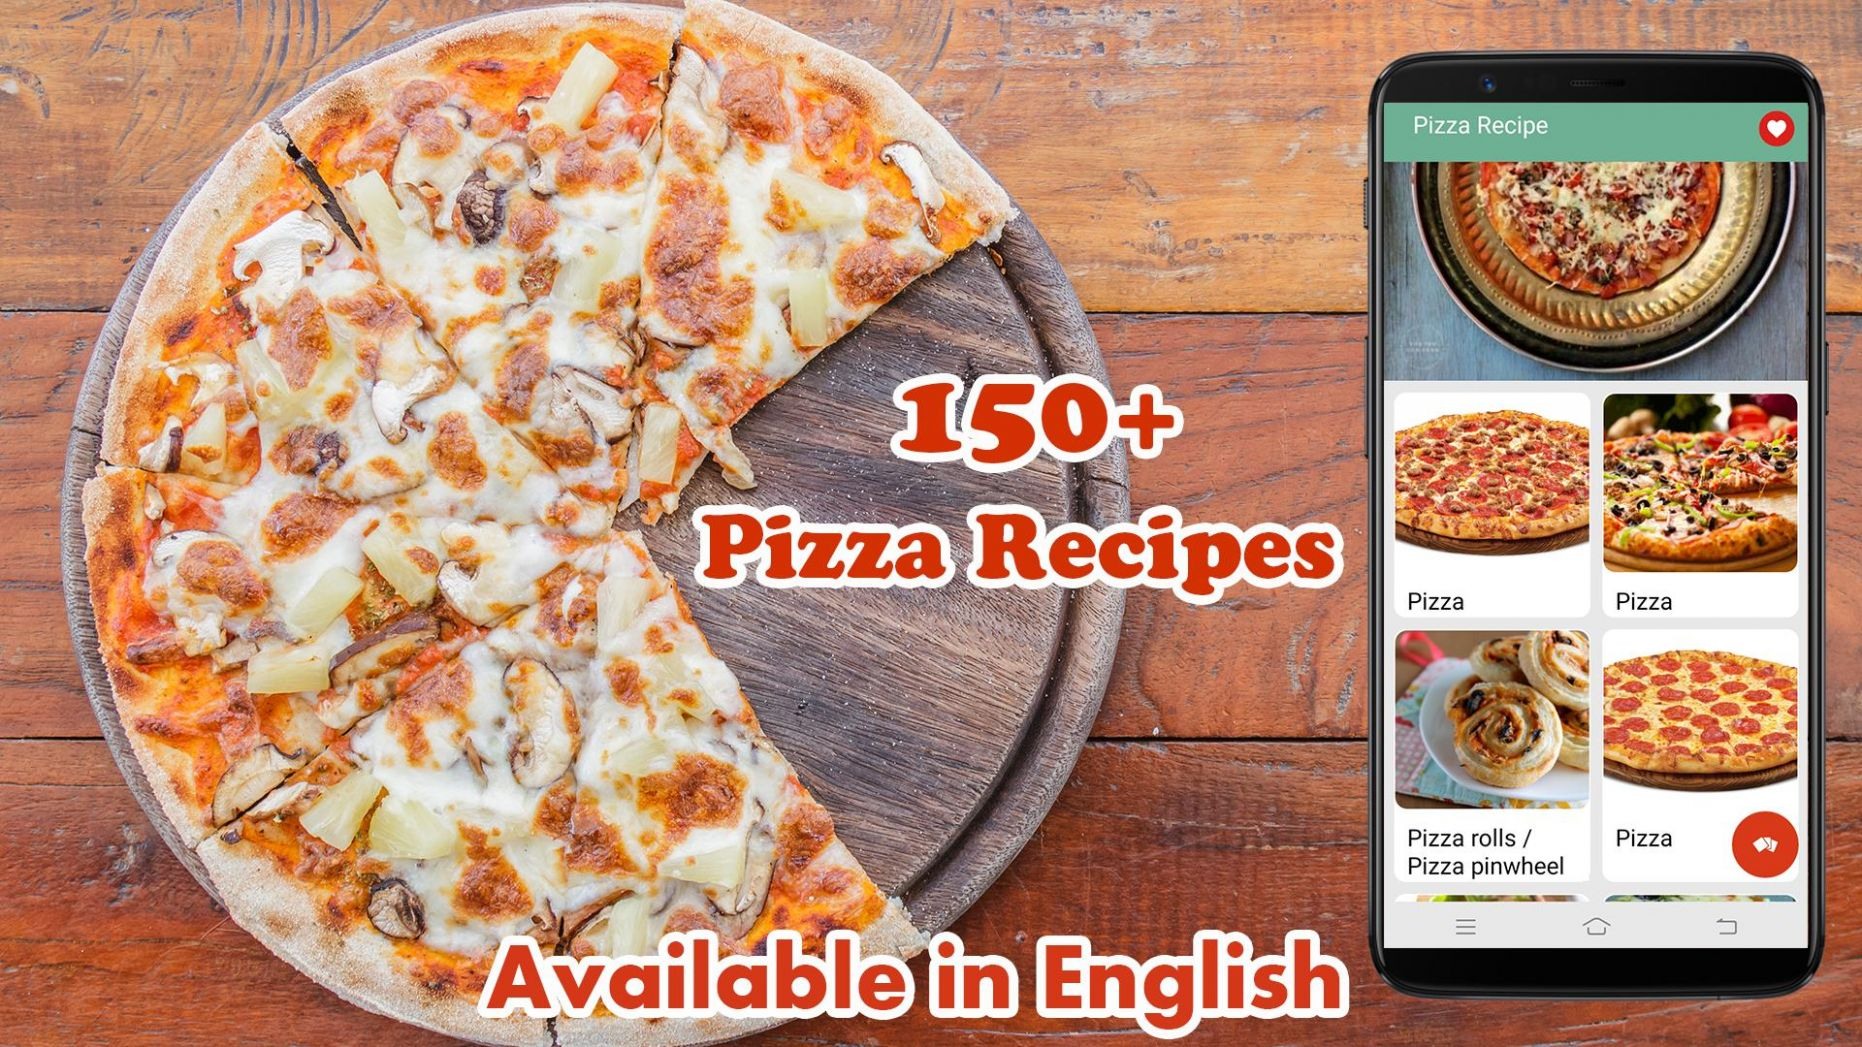 Pizza Recipe for Android - APK Download - Pizza Recipes Download